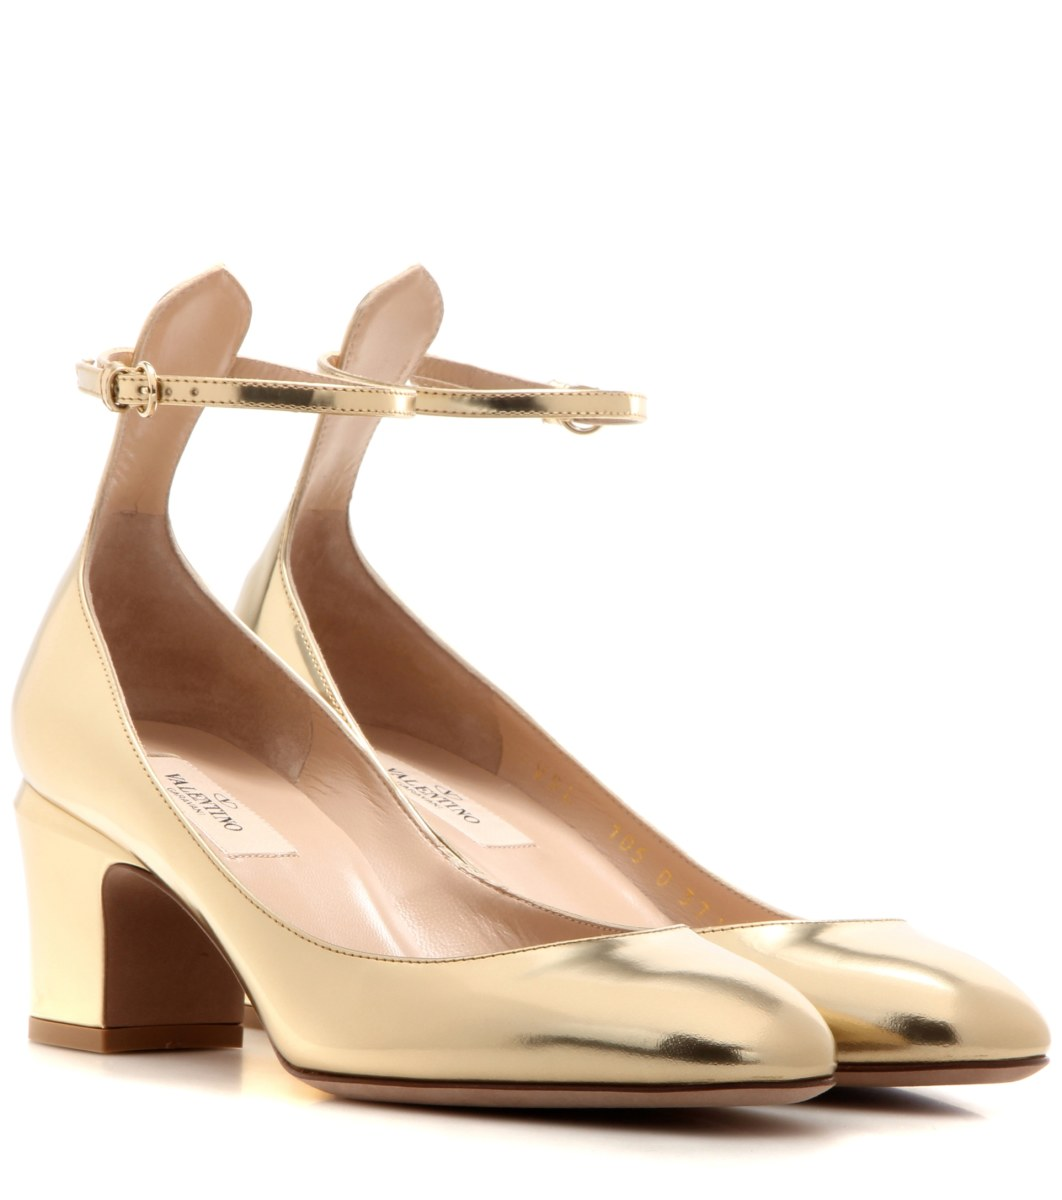 34fa30054d4 The Valentino Shoes Tyler Can t Stop Buying on Sale - Fashionista